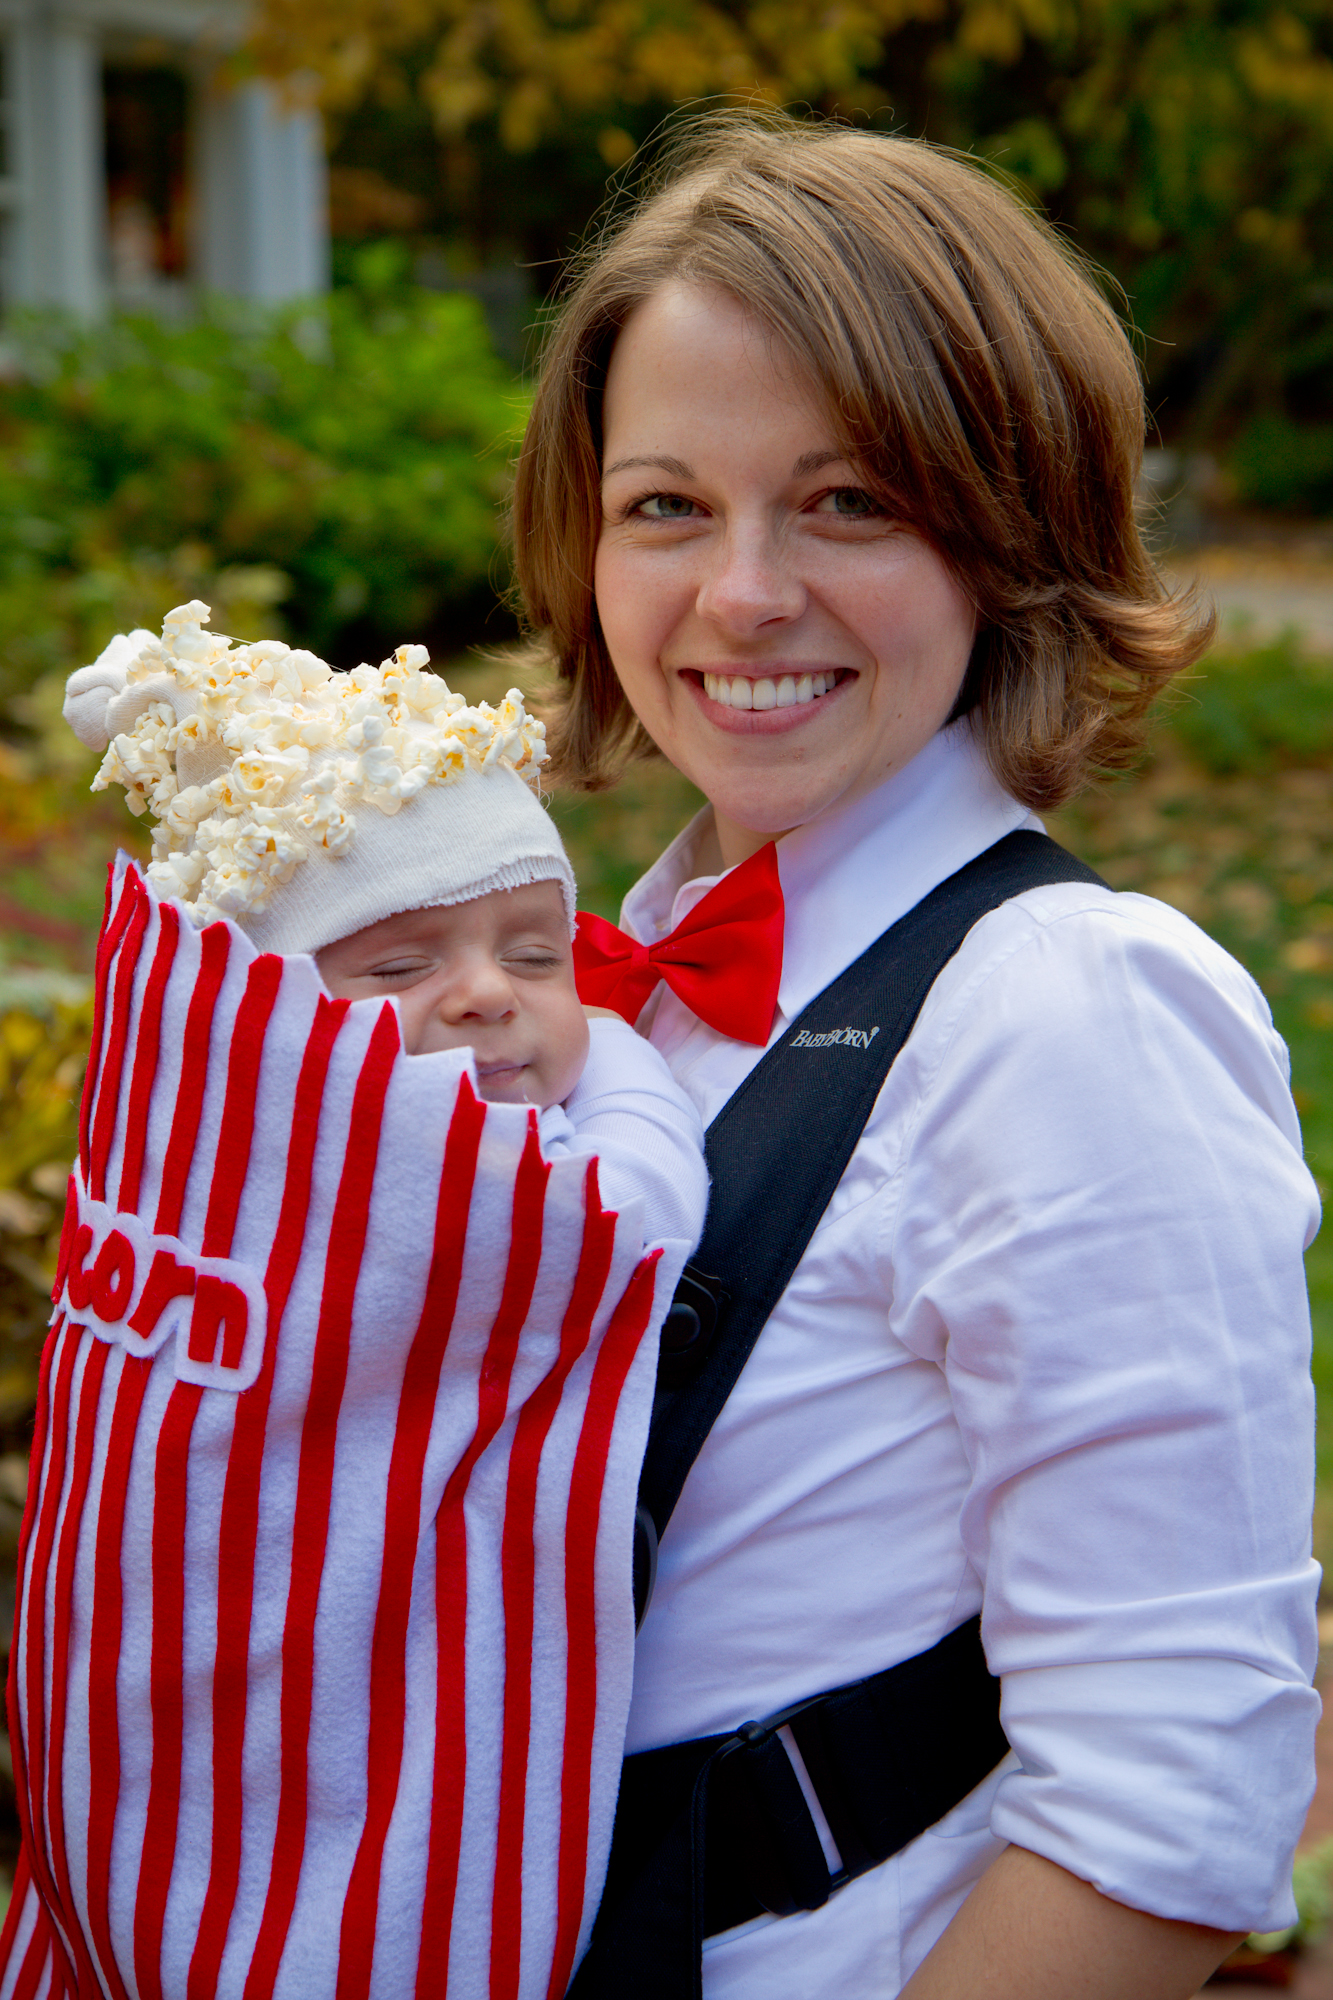 Baby Popcorn Costume by Kate at This Place is Now a Home